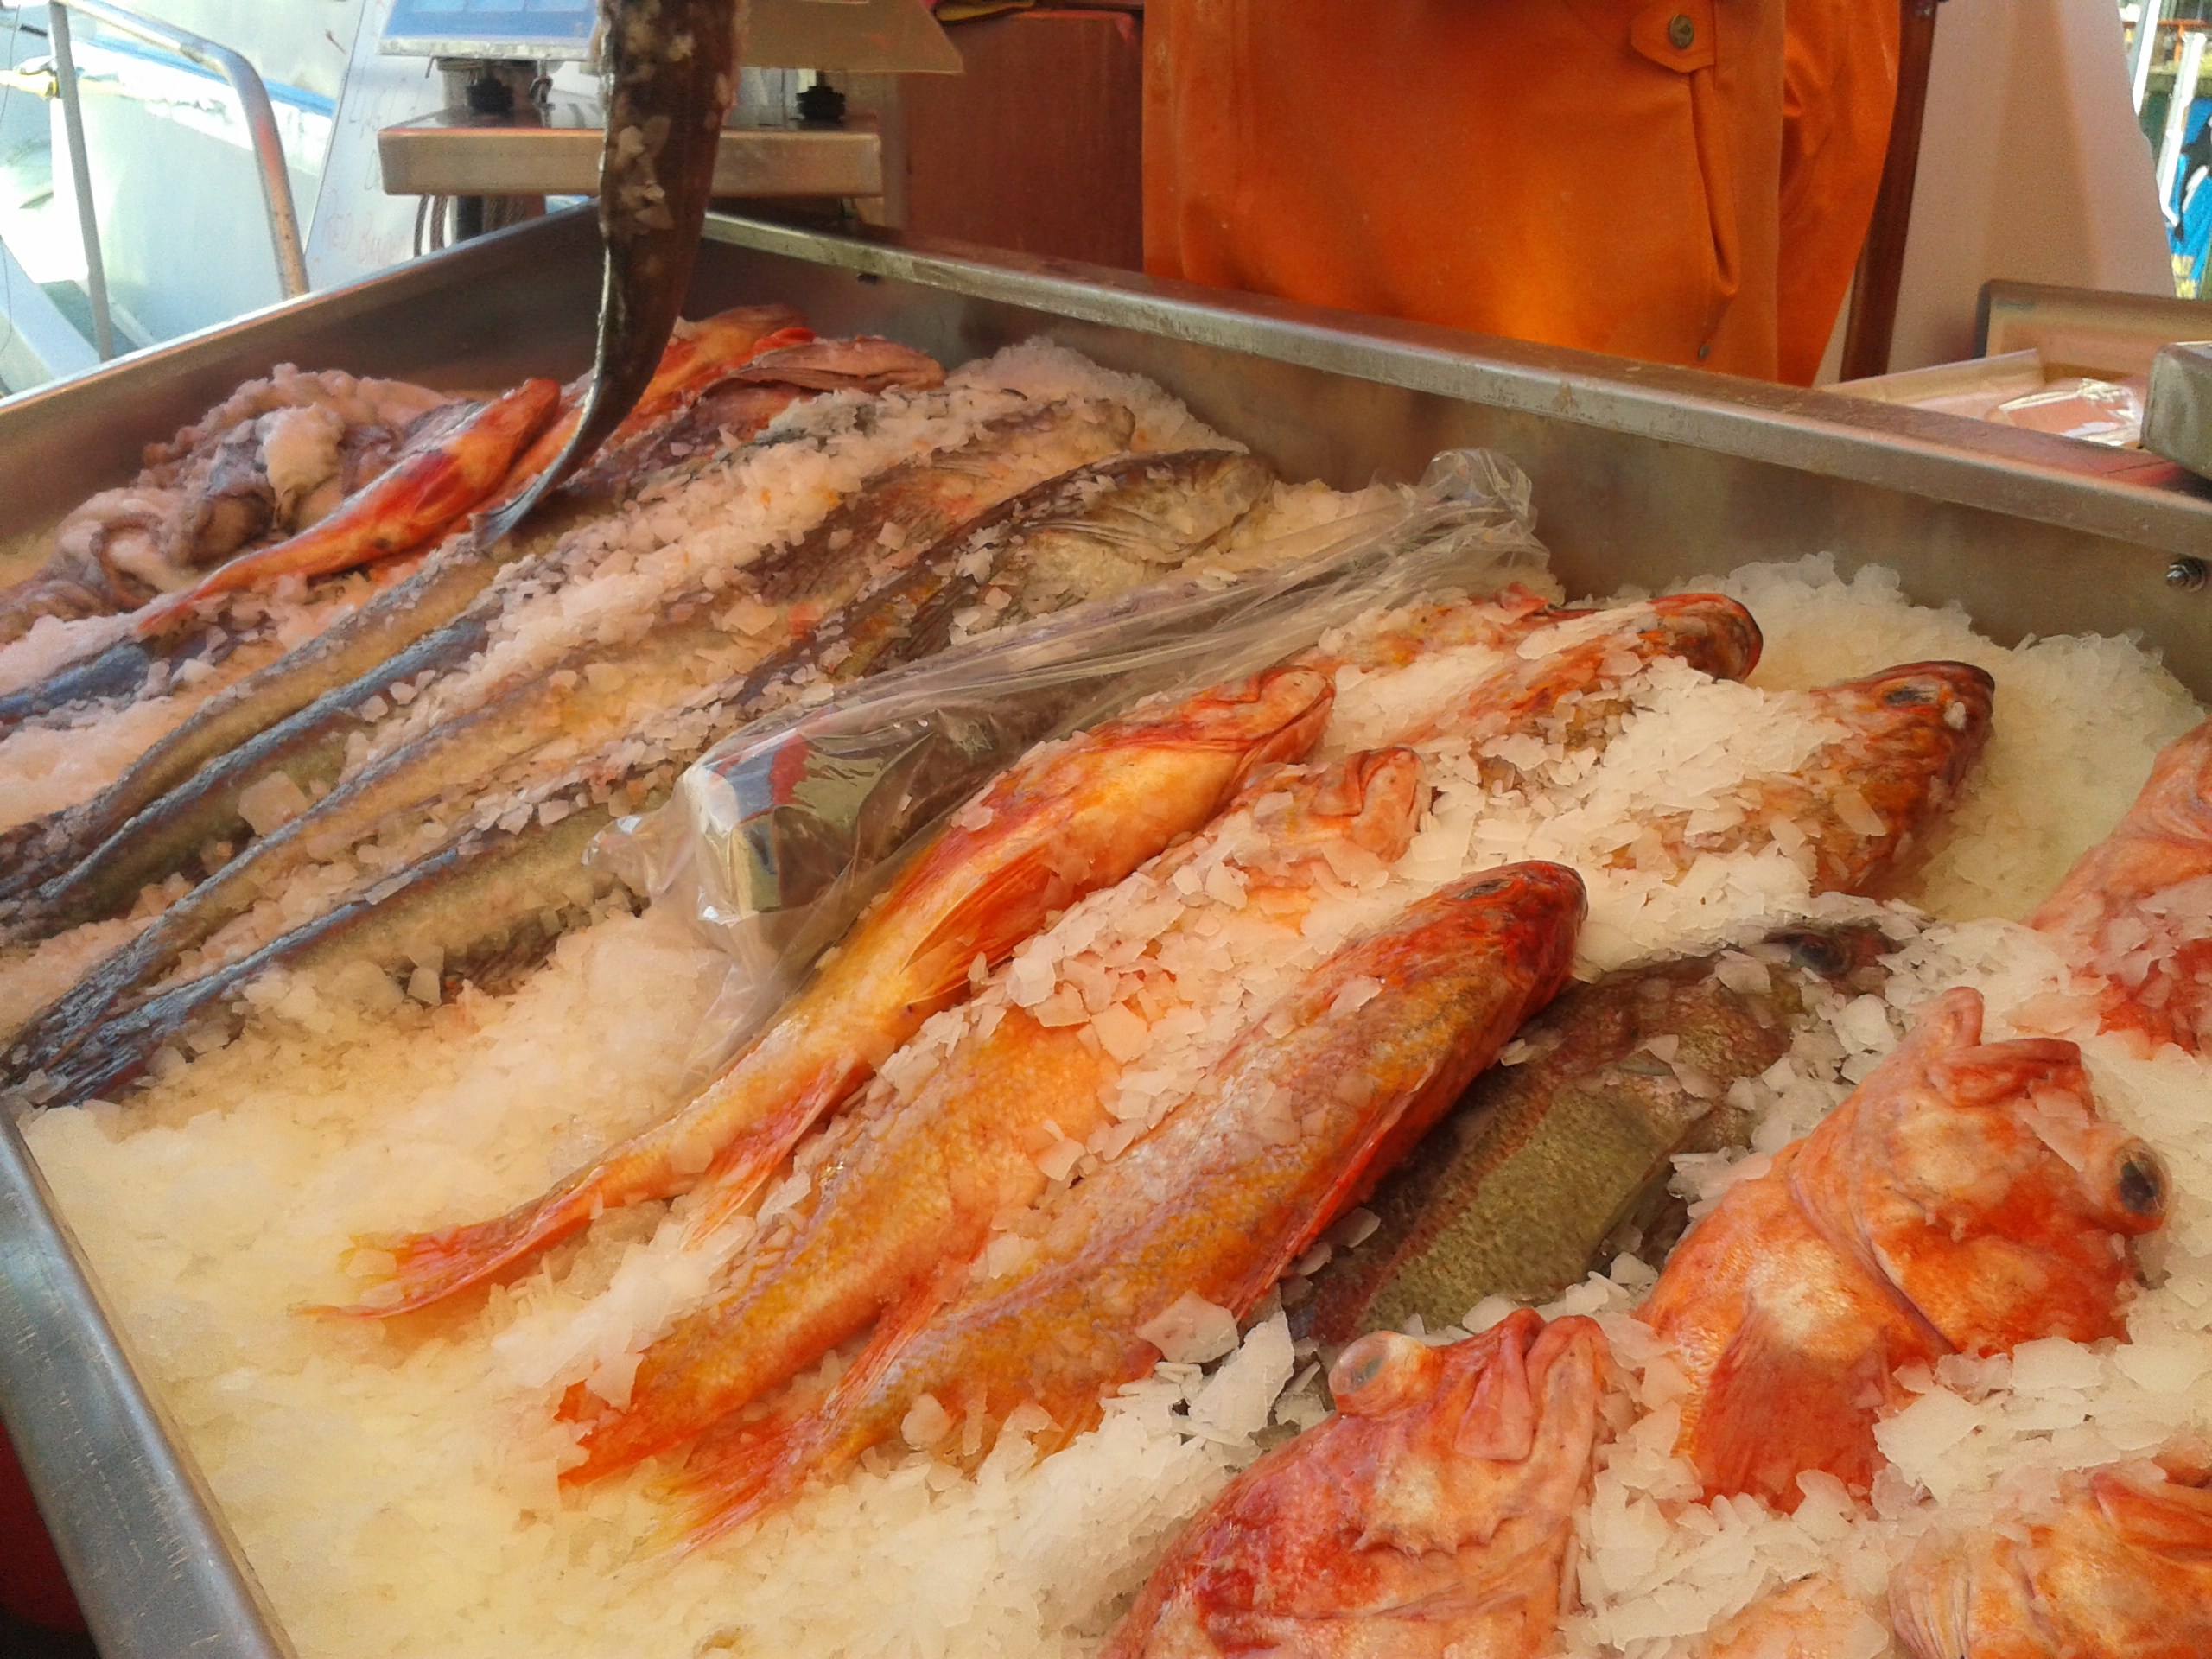 Rockfish on right - Hillis Bros, Fisherman's Wharf